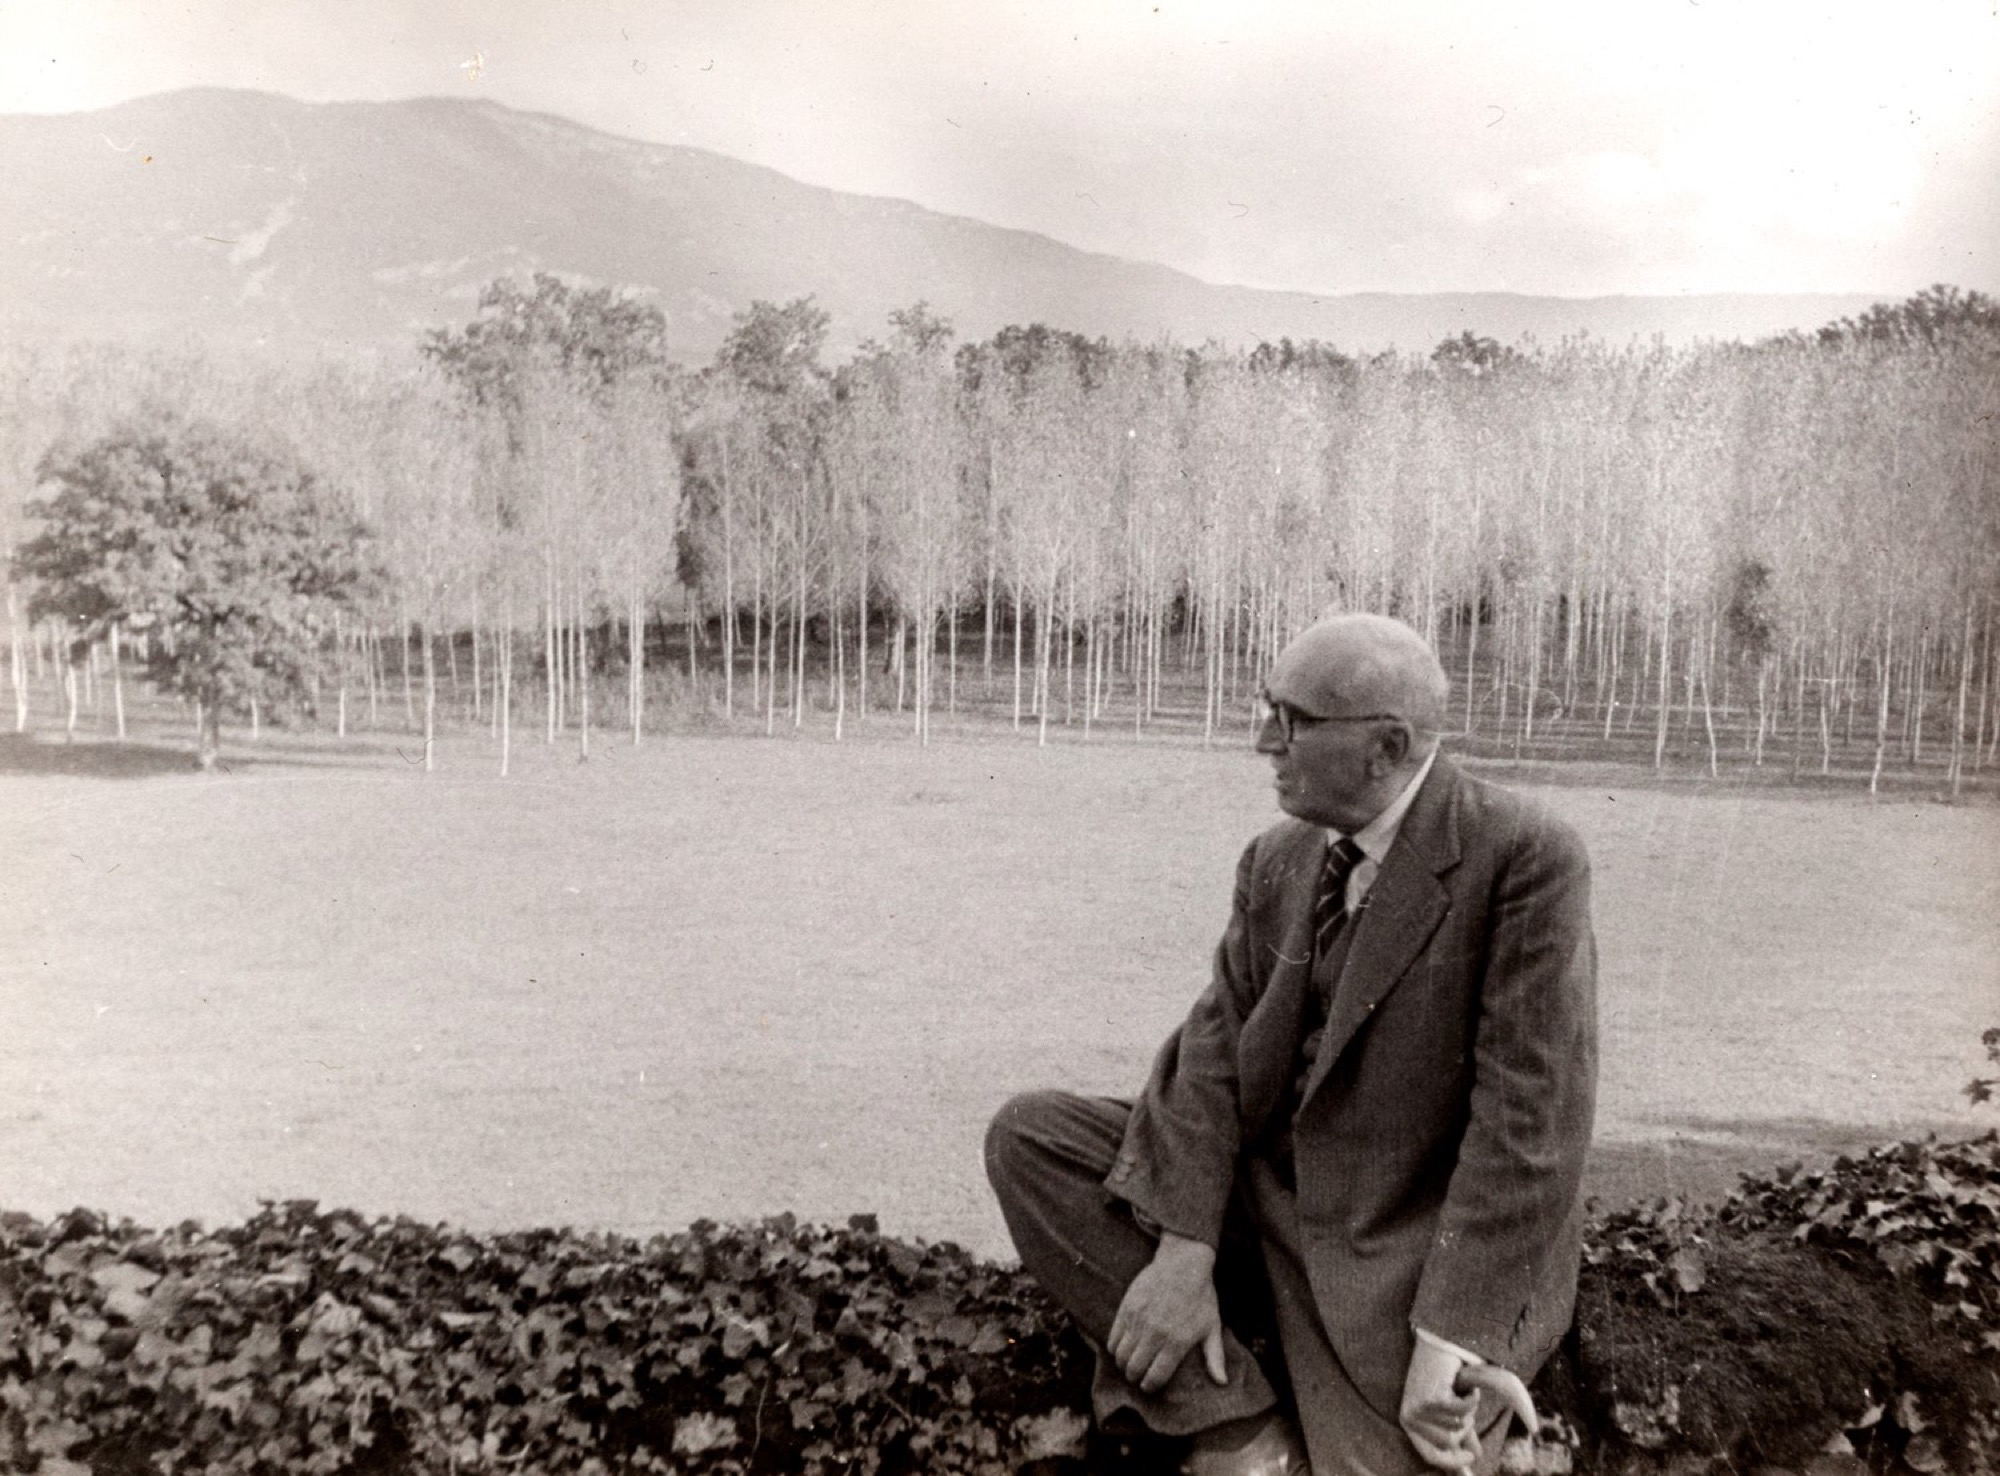 Henri Cartier-Bresson (1908-2004) - Paul Claudel, years 1940 - Two vintage gelatin [...] - Image 3 of 3